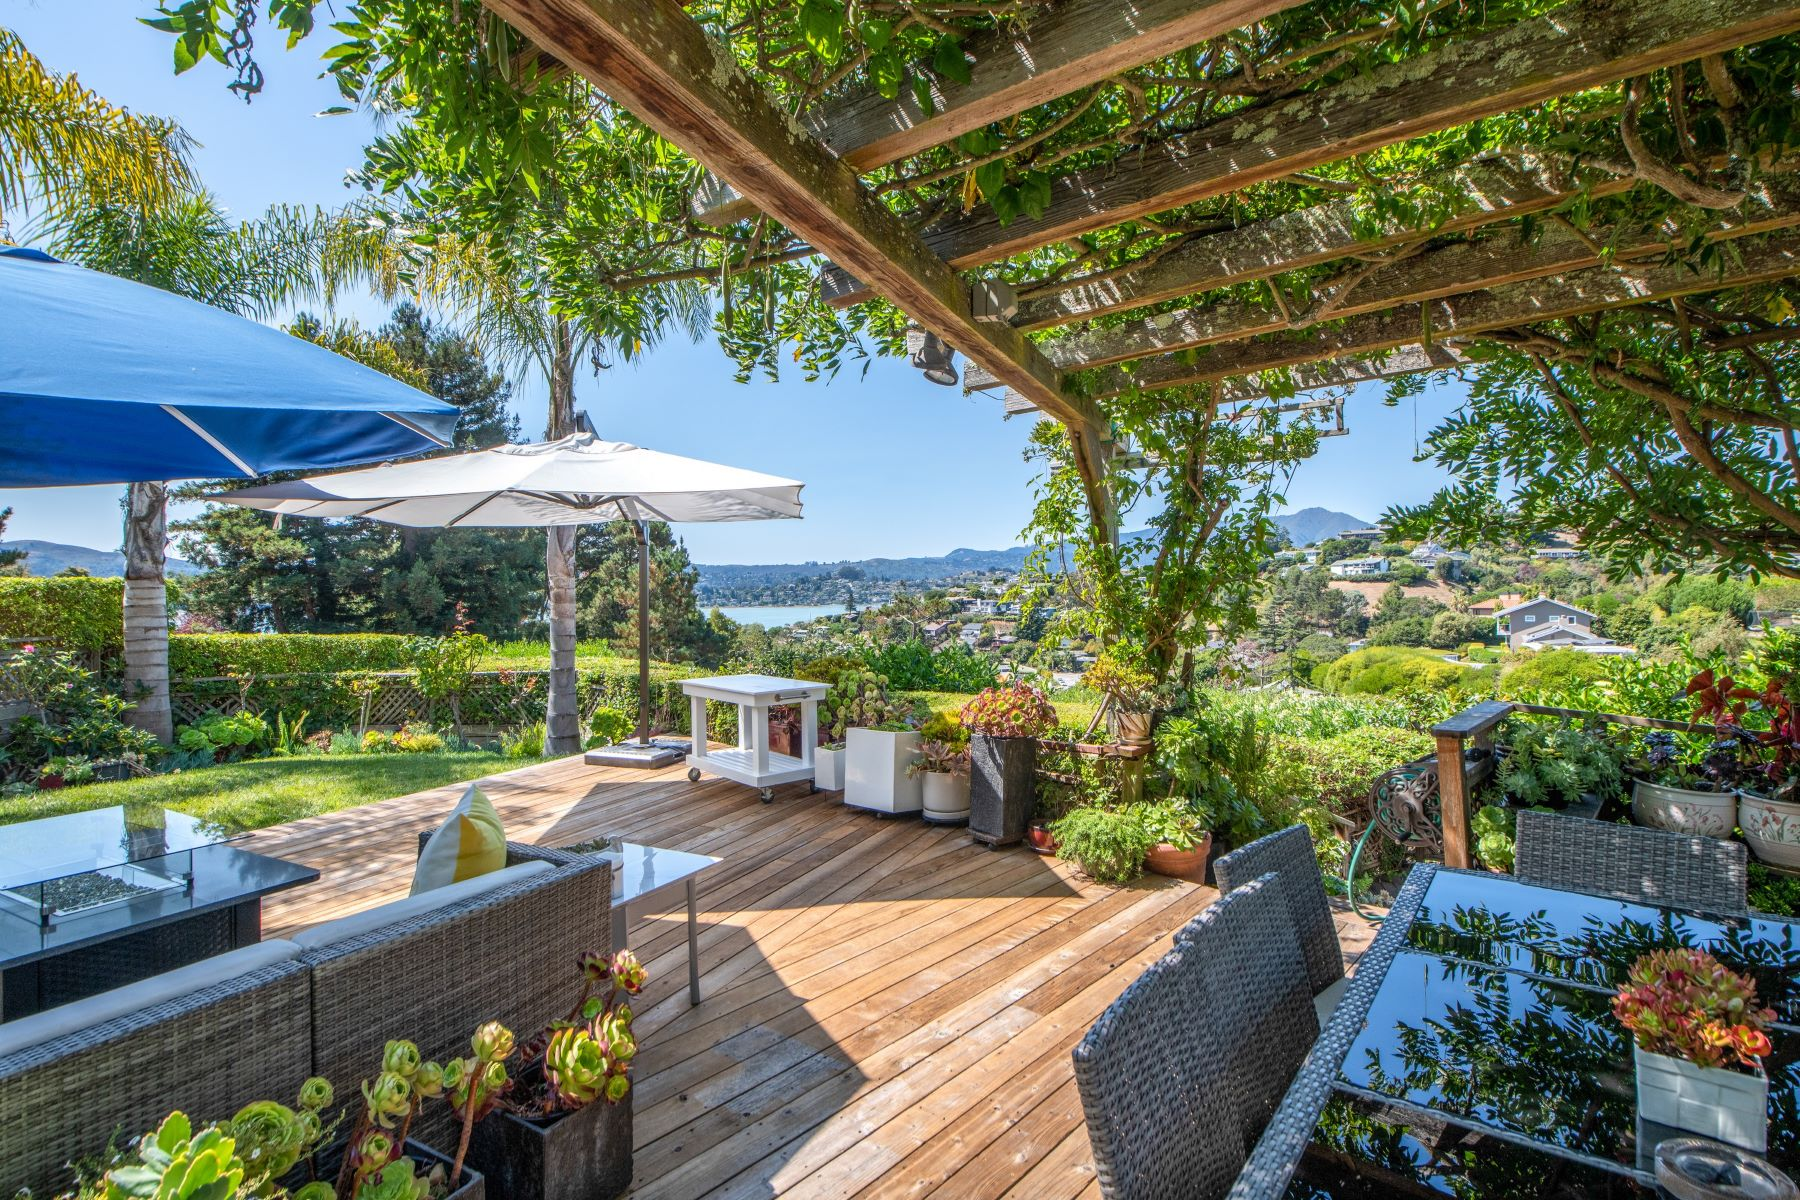 Single Family Homes for Sale at Privacy Amongst Lush Gardens 39 Geldert Ct Tiburon, California 94920 United States